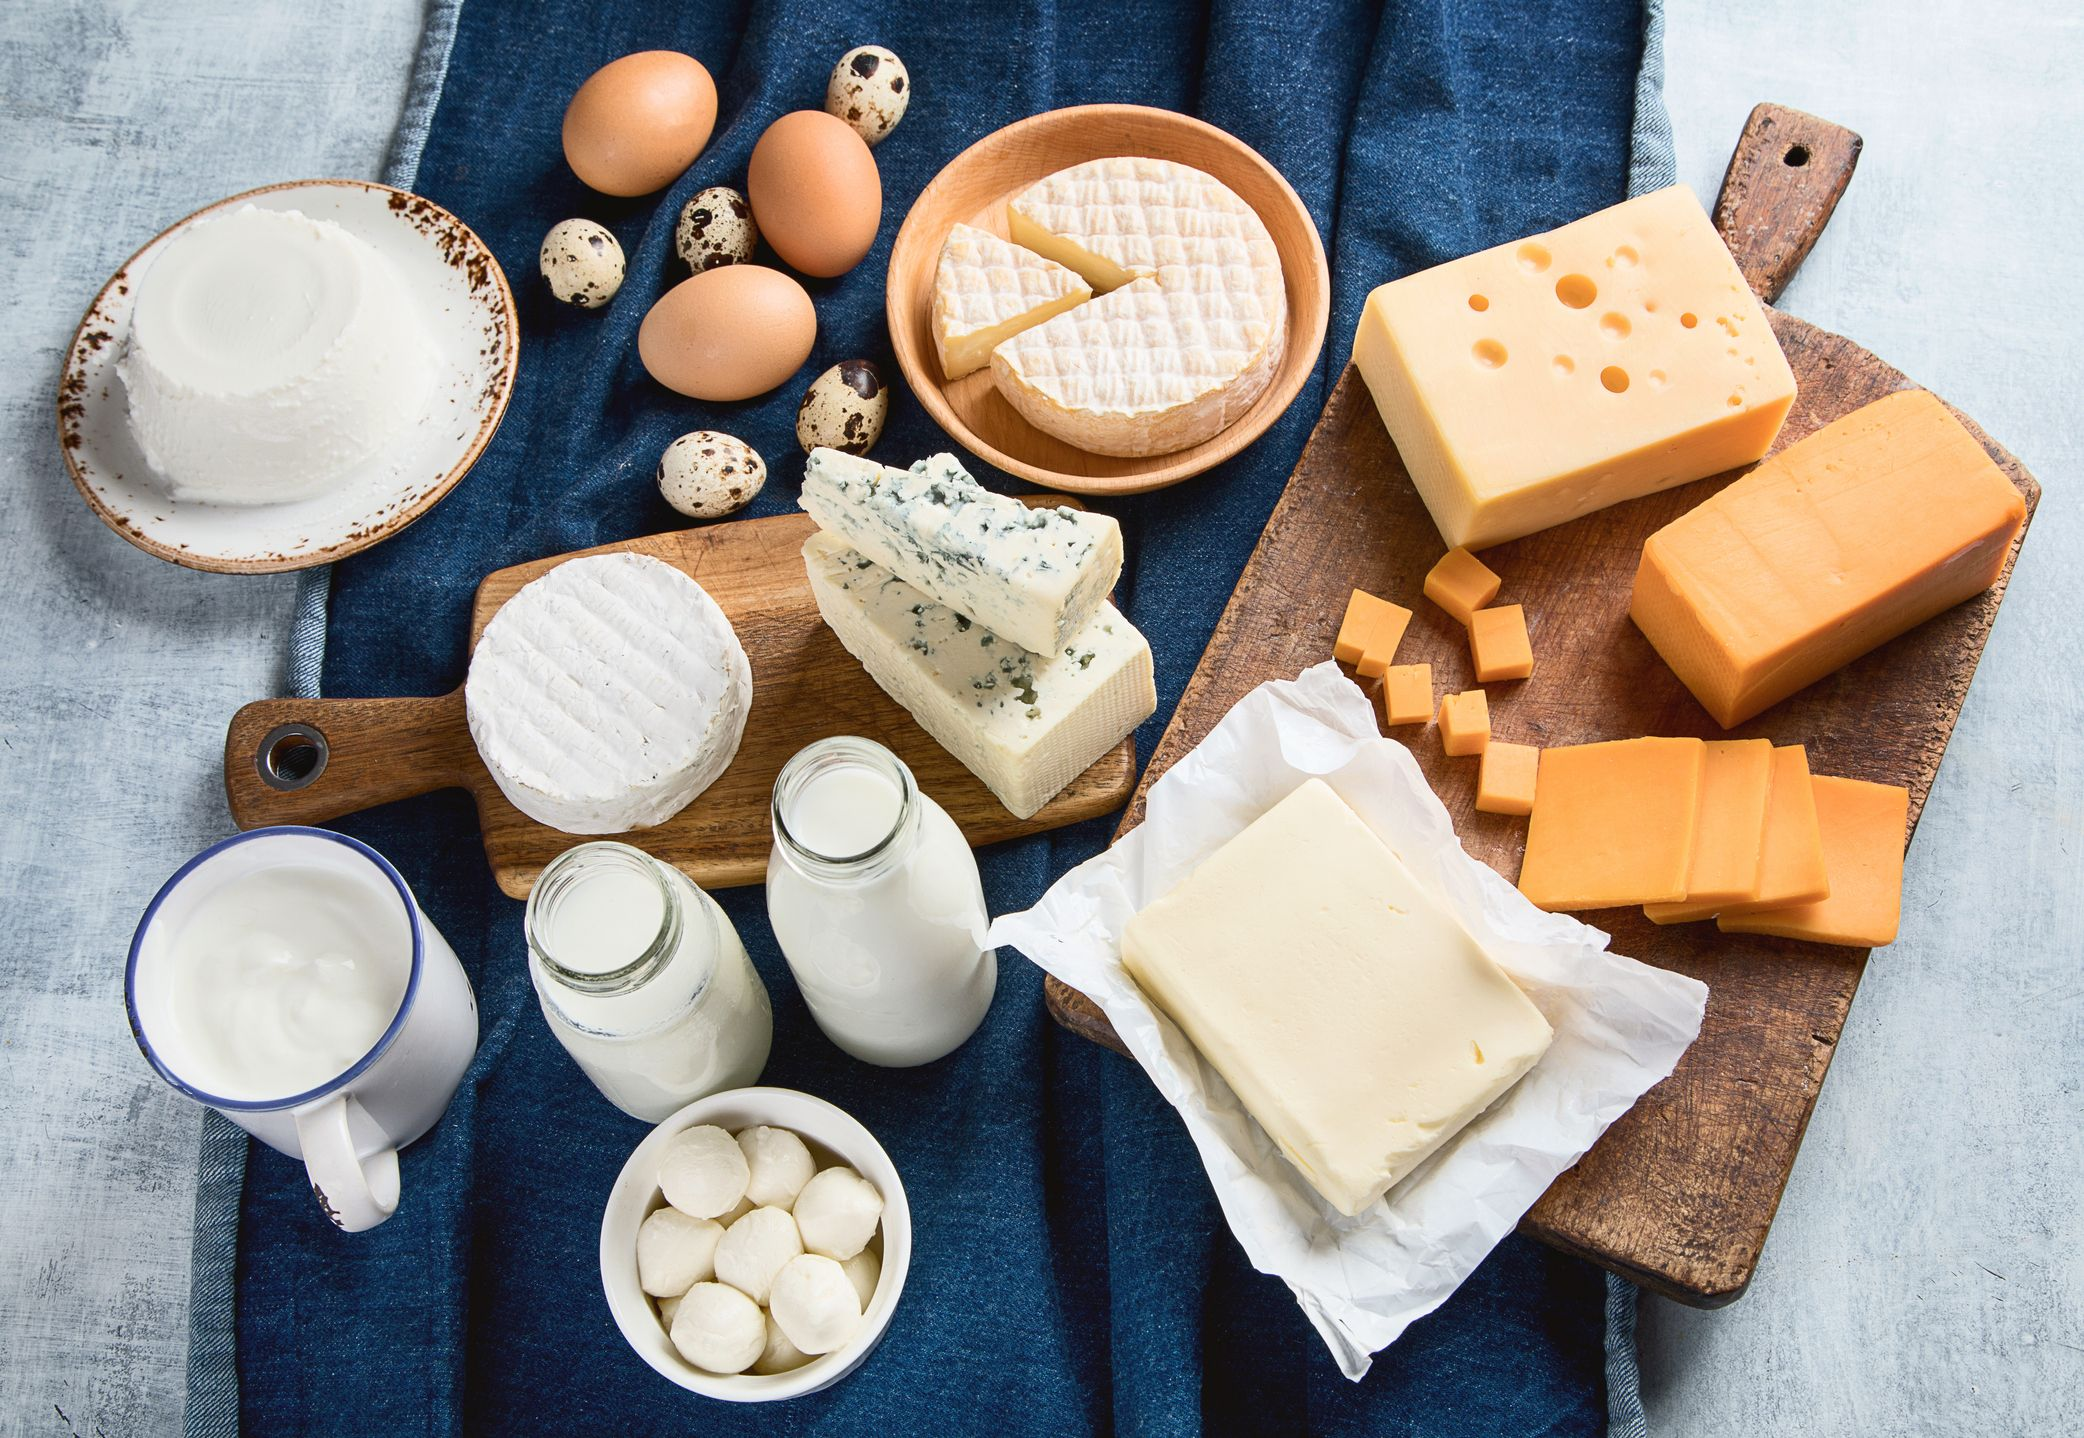 6 Things That Happen to Your Body When You Stop Eating Dairy, According to Dietitians